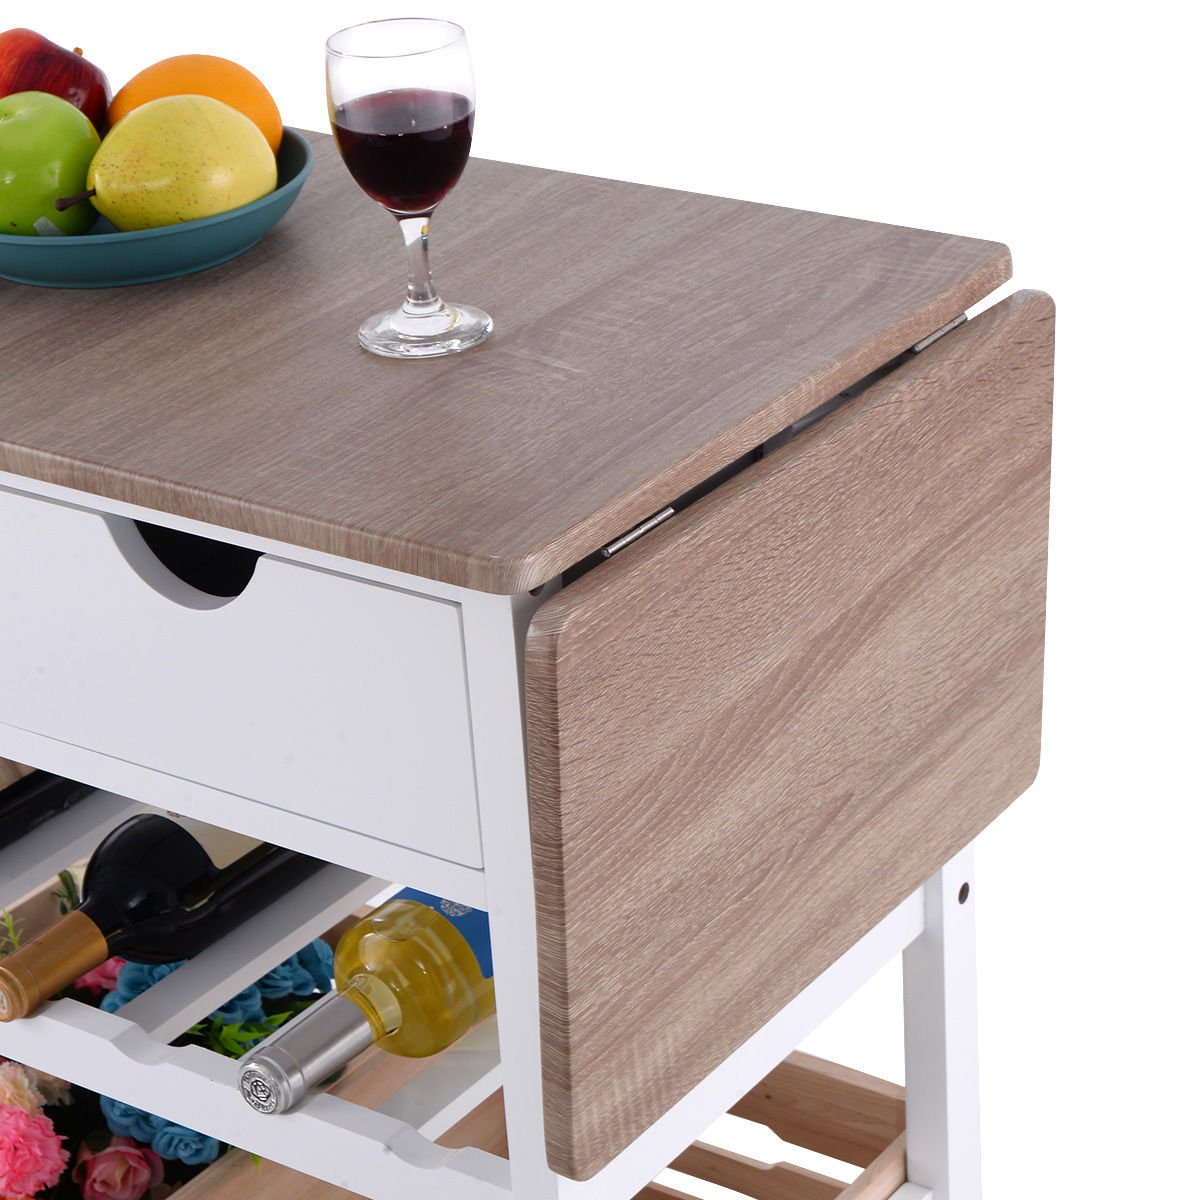 Costzon Kitchen Trolley Island Cart Dining Storage with Drawers Basket Wine Rack by Costzon (Image #7)